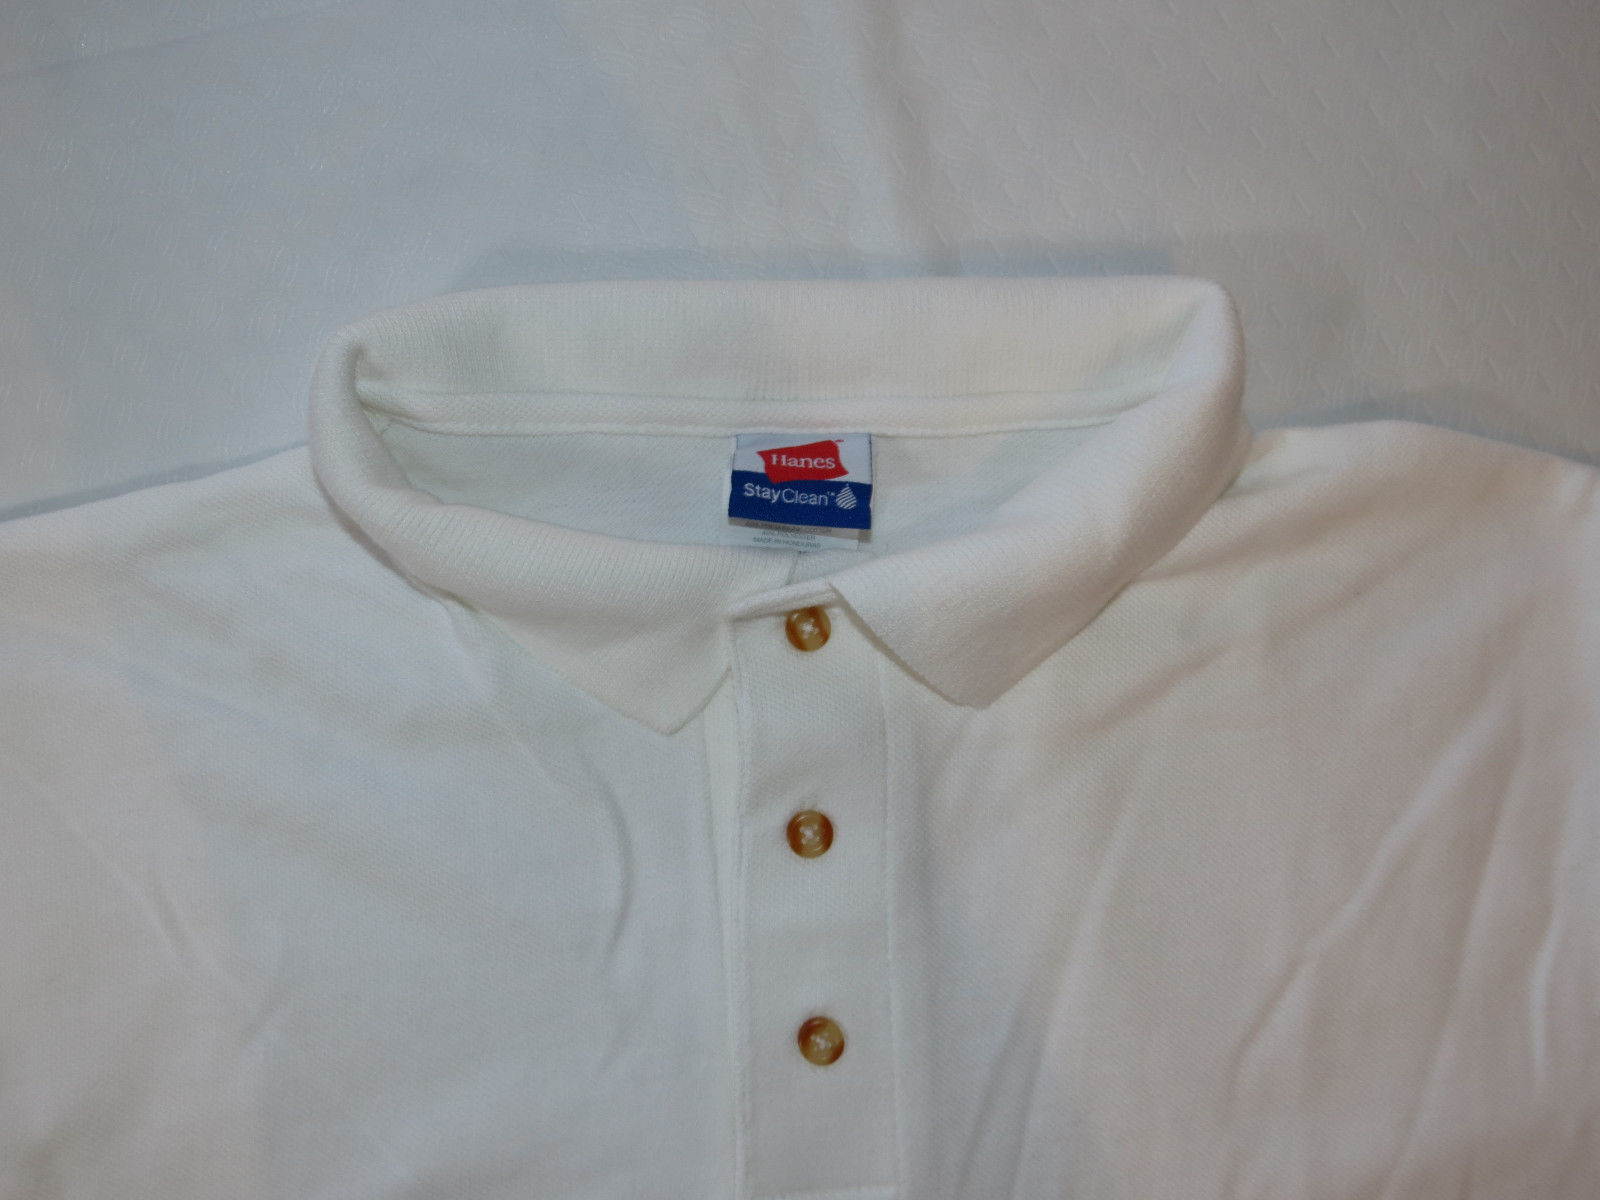 Hanes Stay Clean adult small S 34-36 mens White short sleeve polo shirt NOS